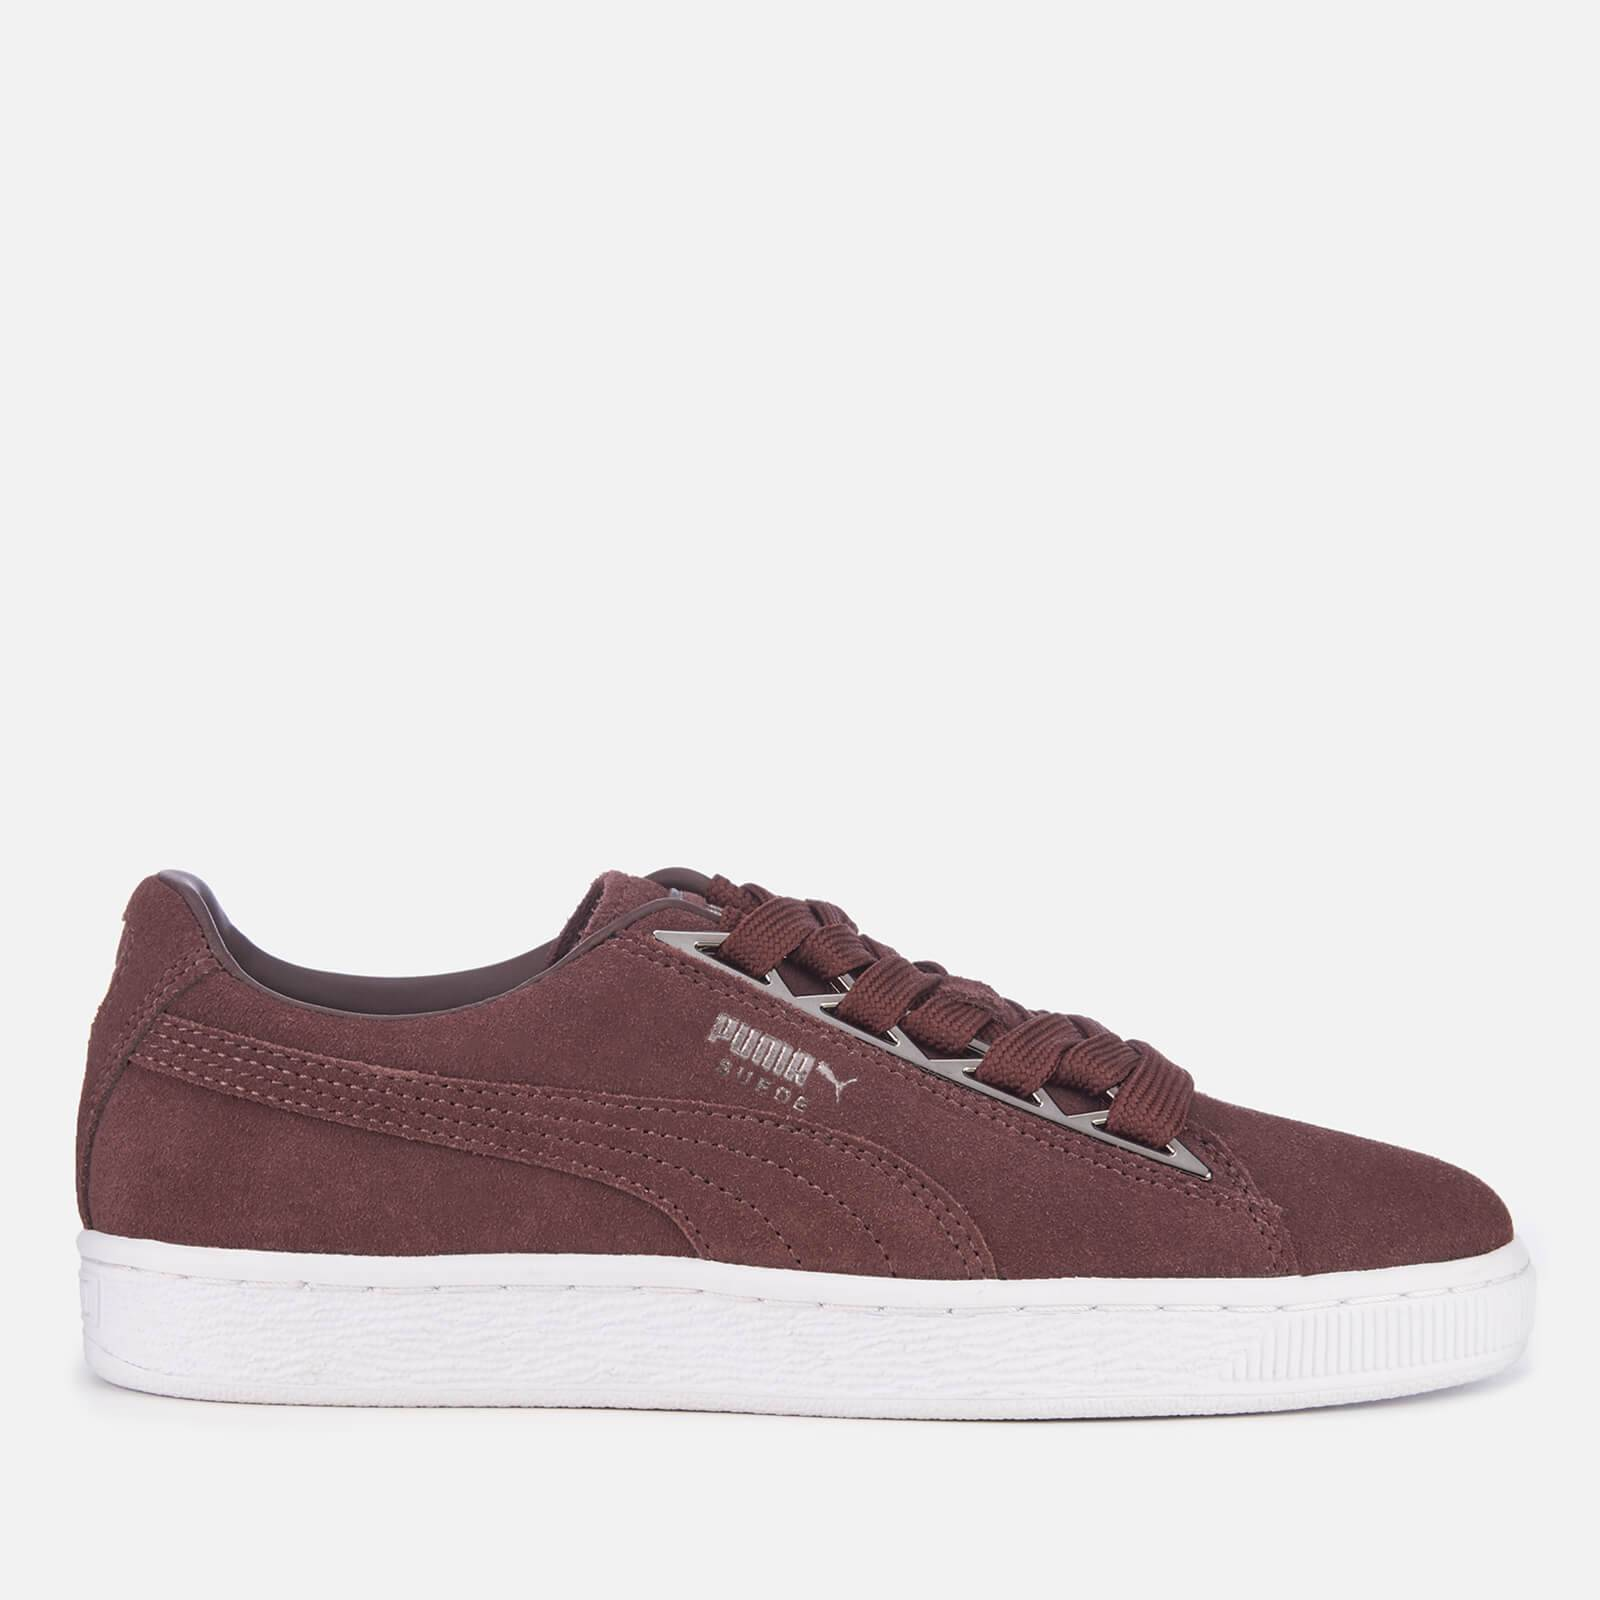 Puma Women's Suede Jewel Metallic Trainers - Peppercorn - UK 6 - Burgundy/Purple